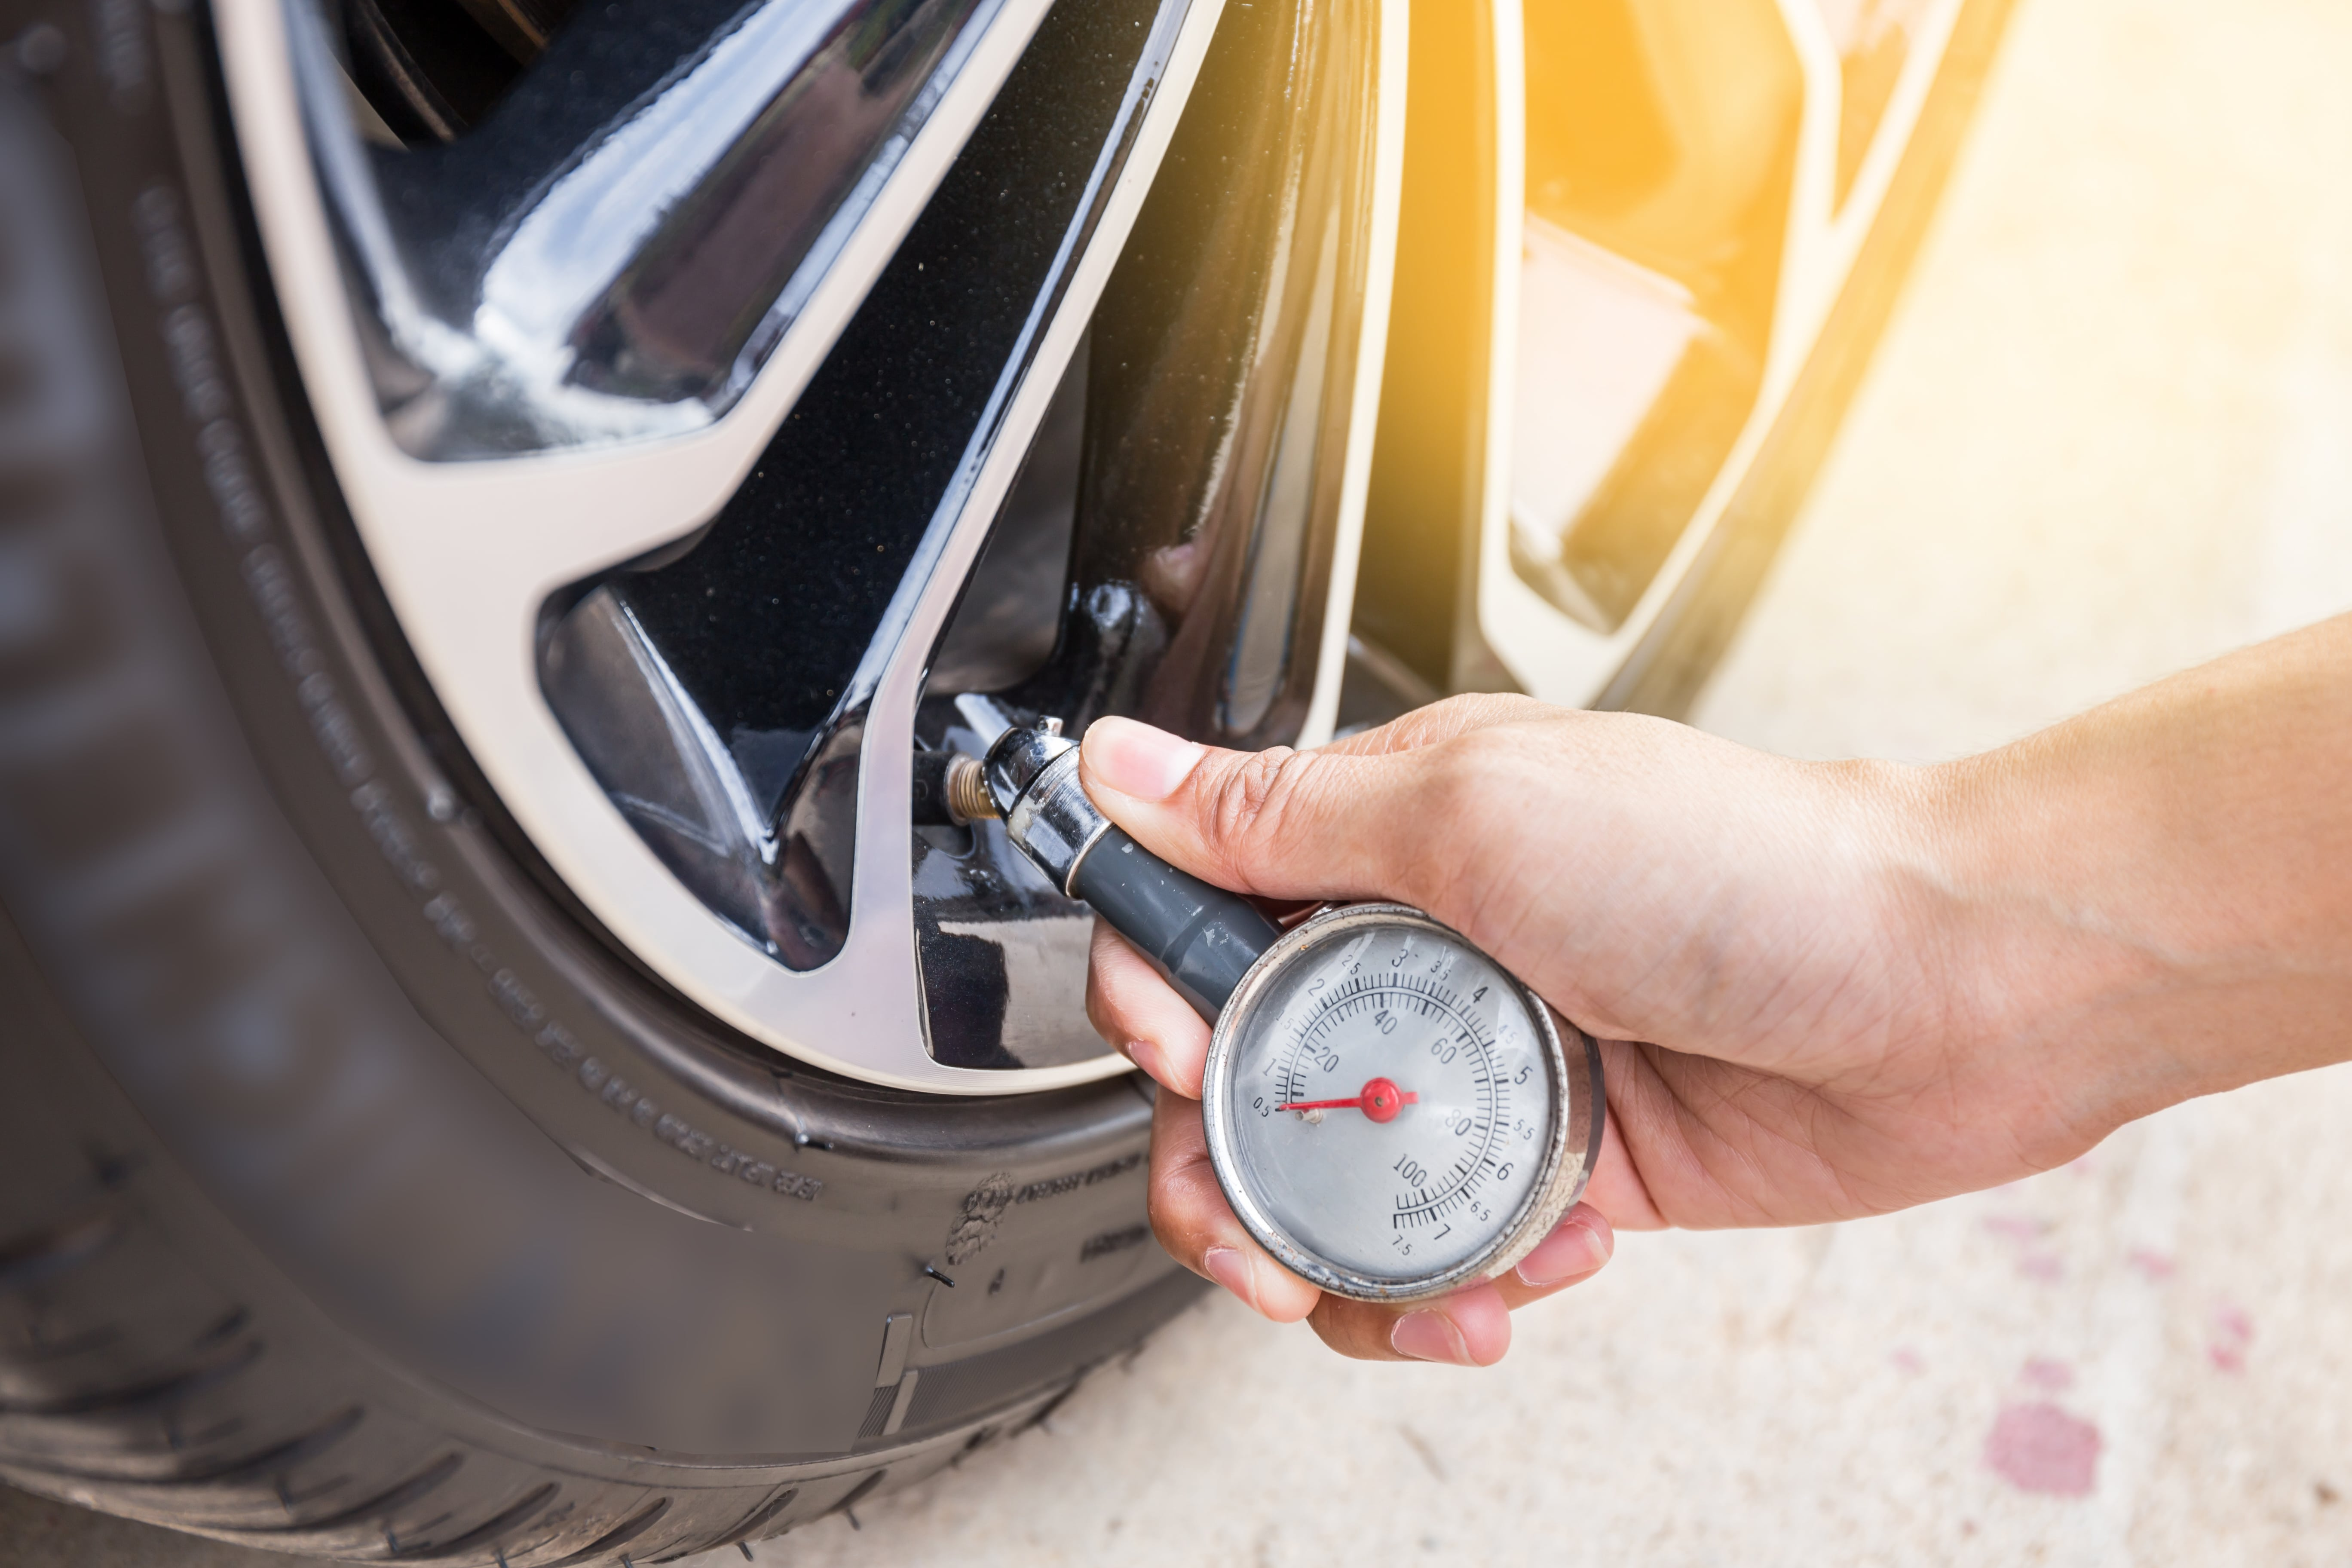 Here are some tips to keep your tires in good condition.